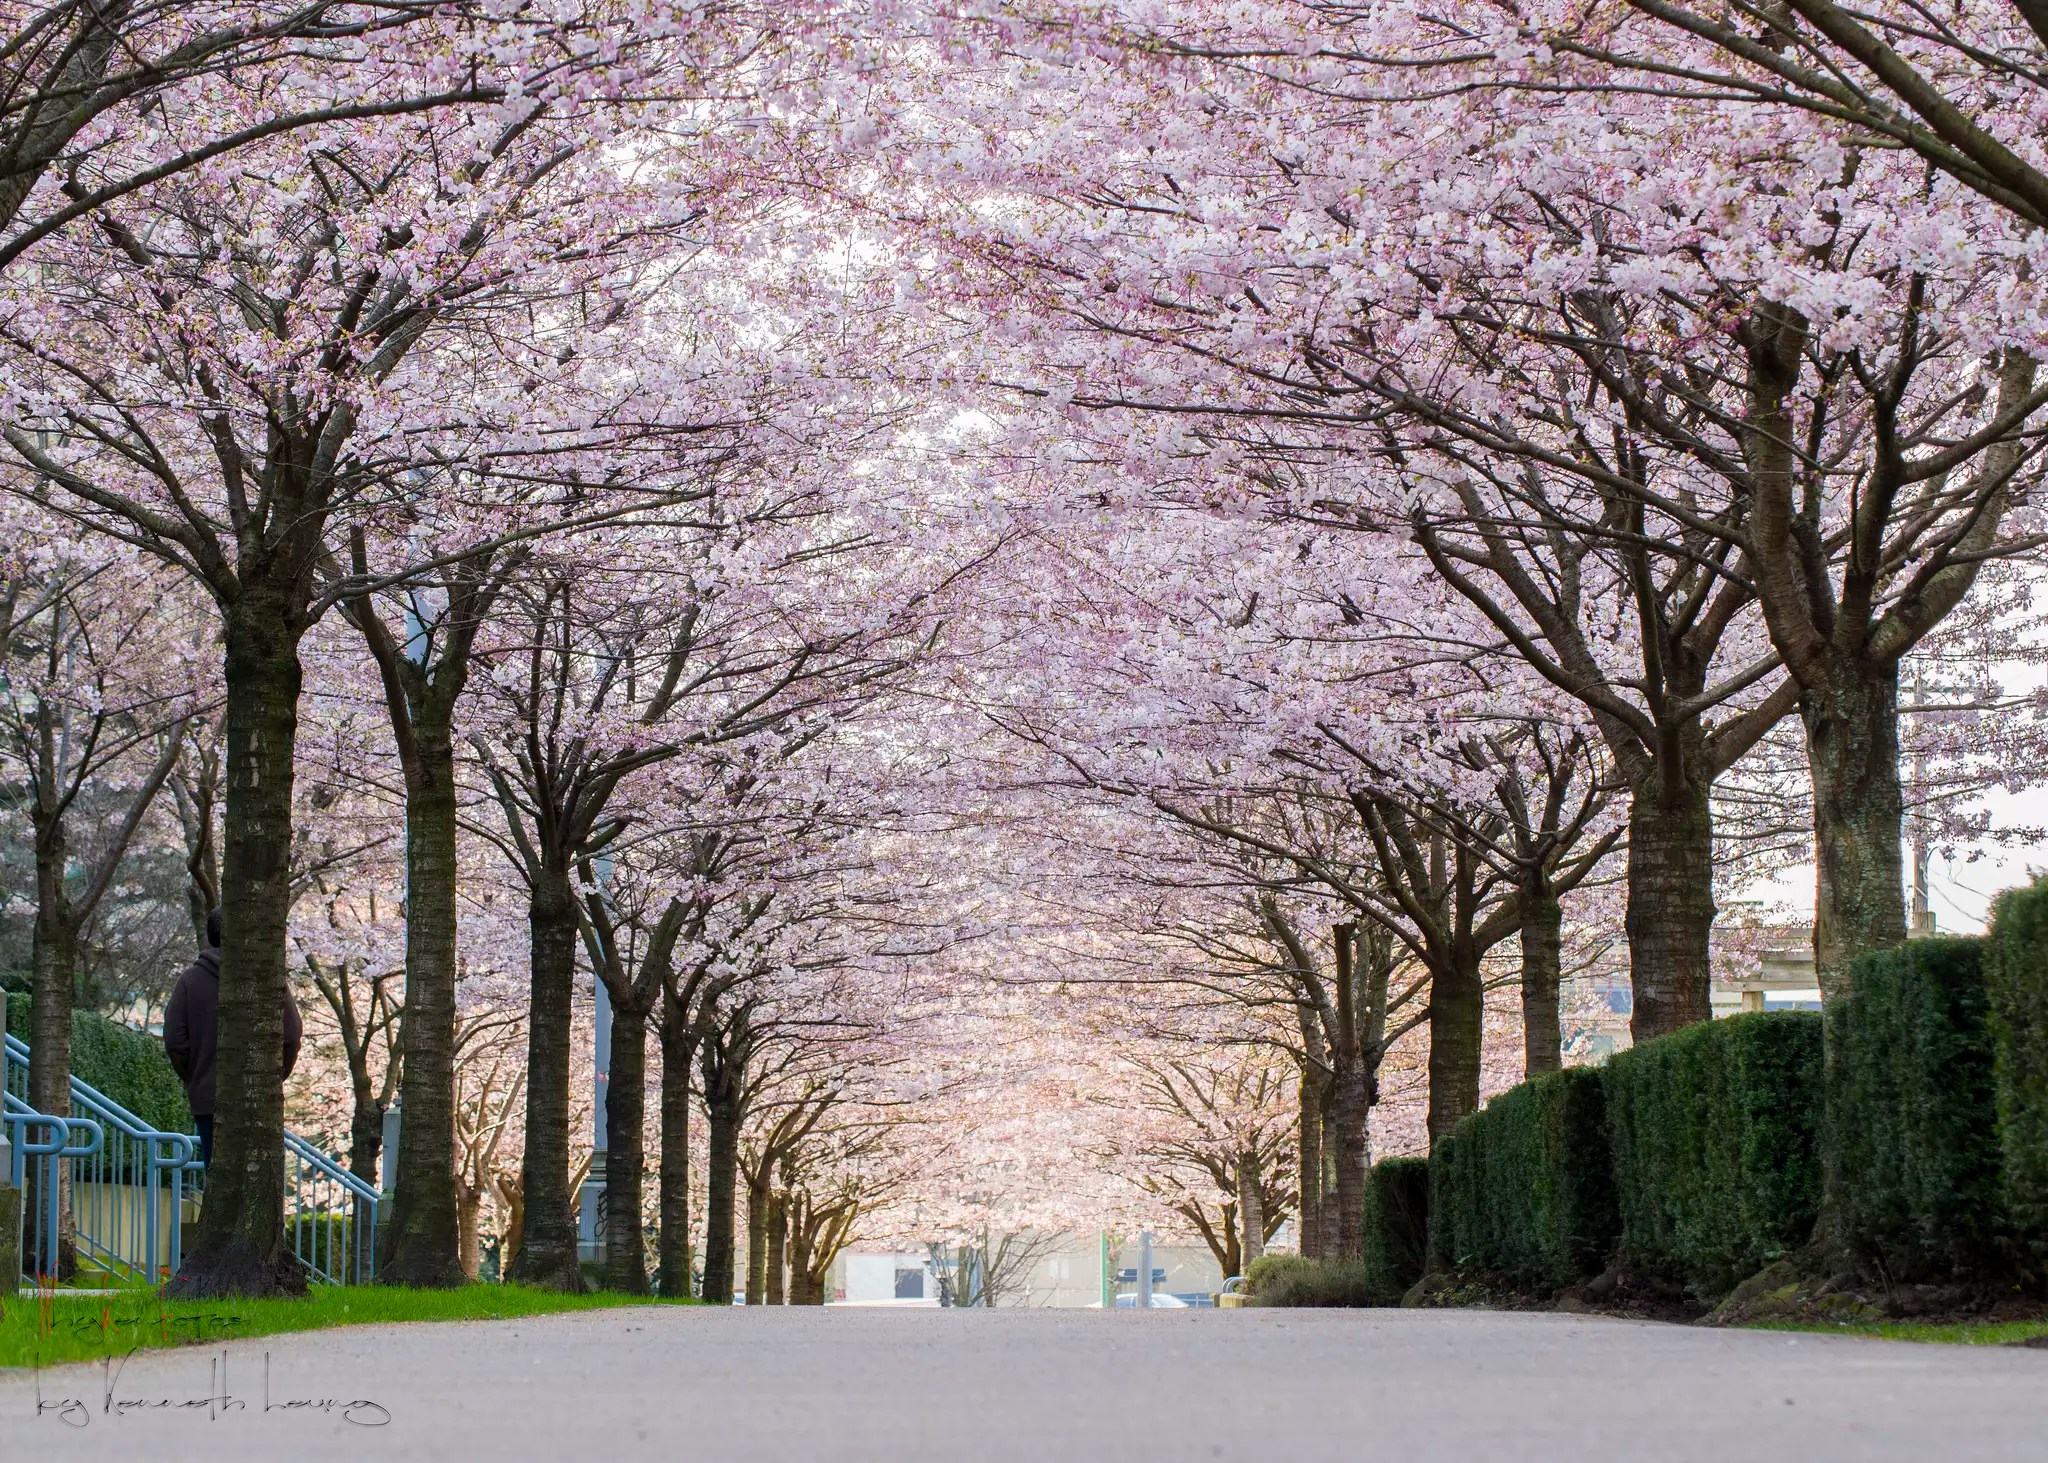 Falling Rose Petals Live Wallpaper A Guide To Vancouver S Cherry Blossoms